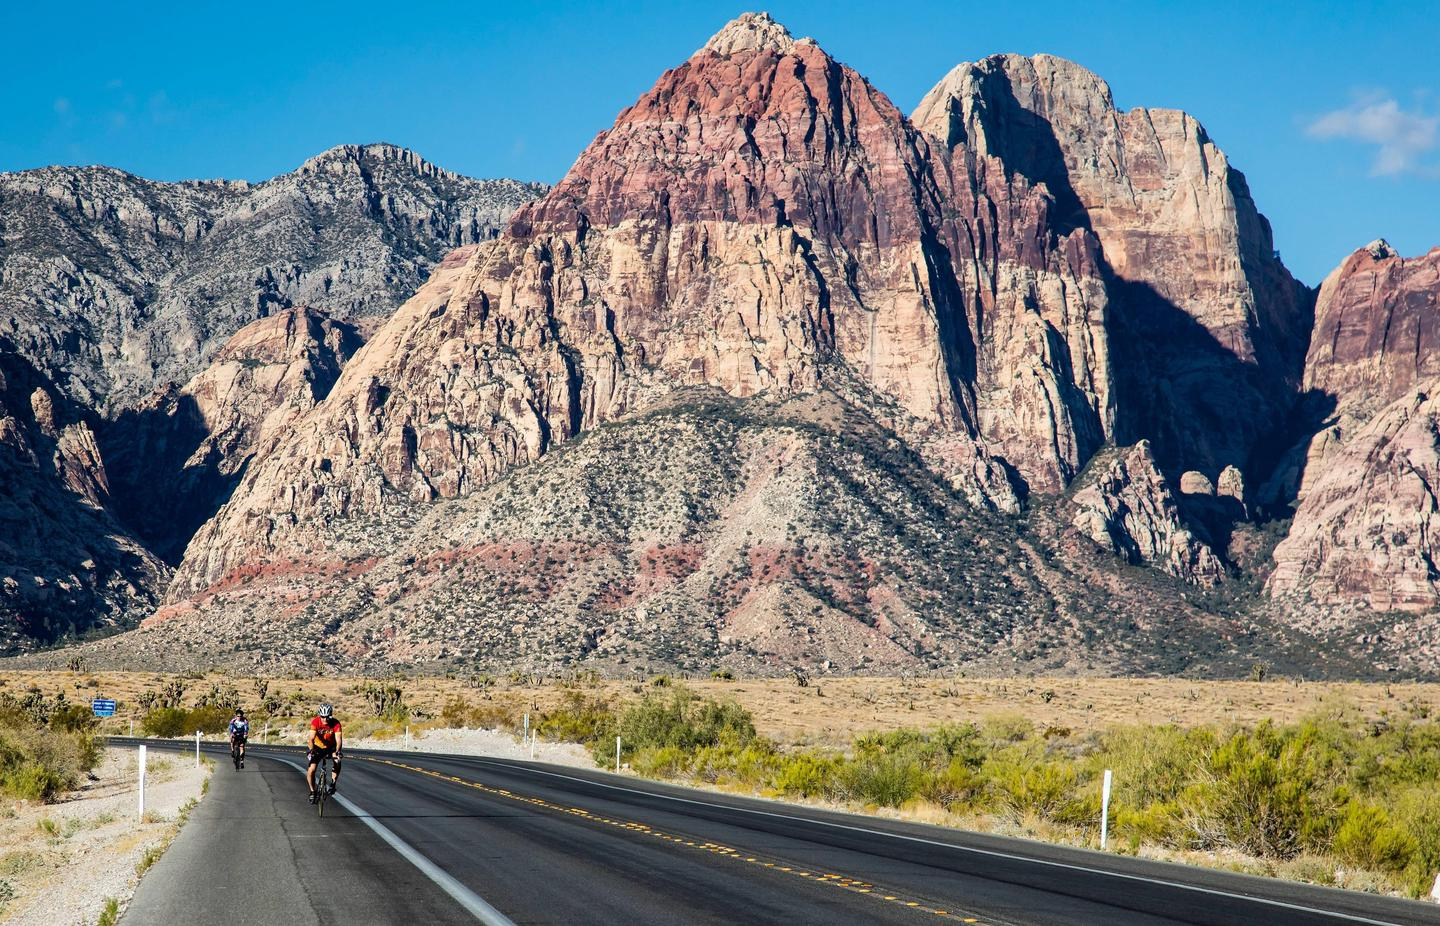 Cyclists ride along the road near Red Rock Canyon. Cyclists enjoy the views of Red Rock Canyon.